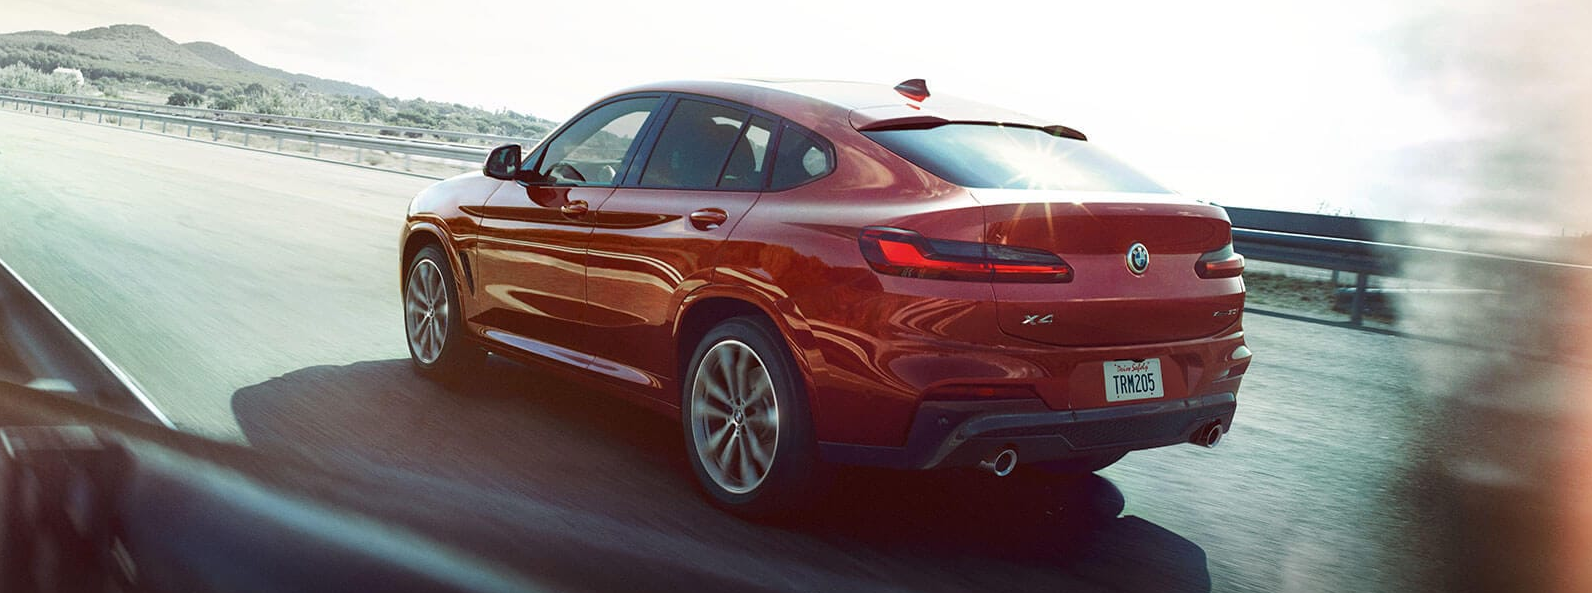 New BMW X4 Model Review | The BMW Store